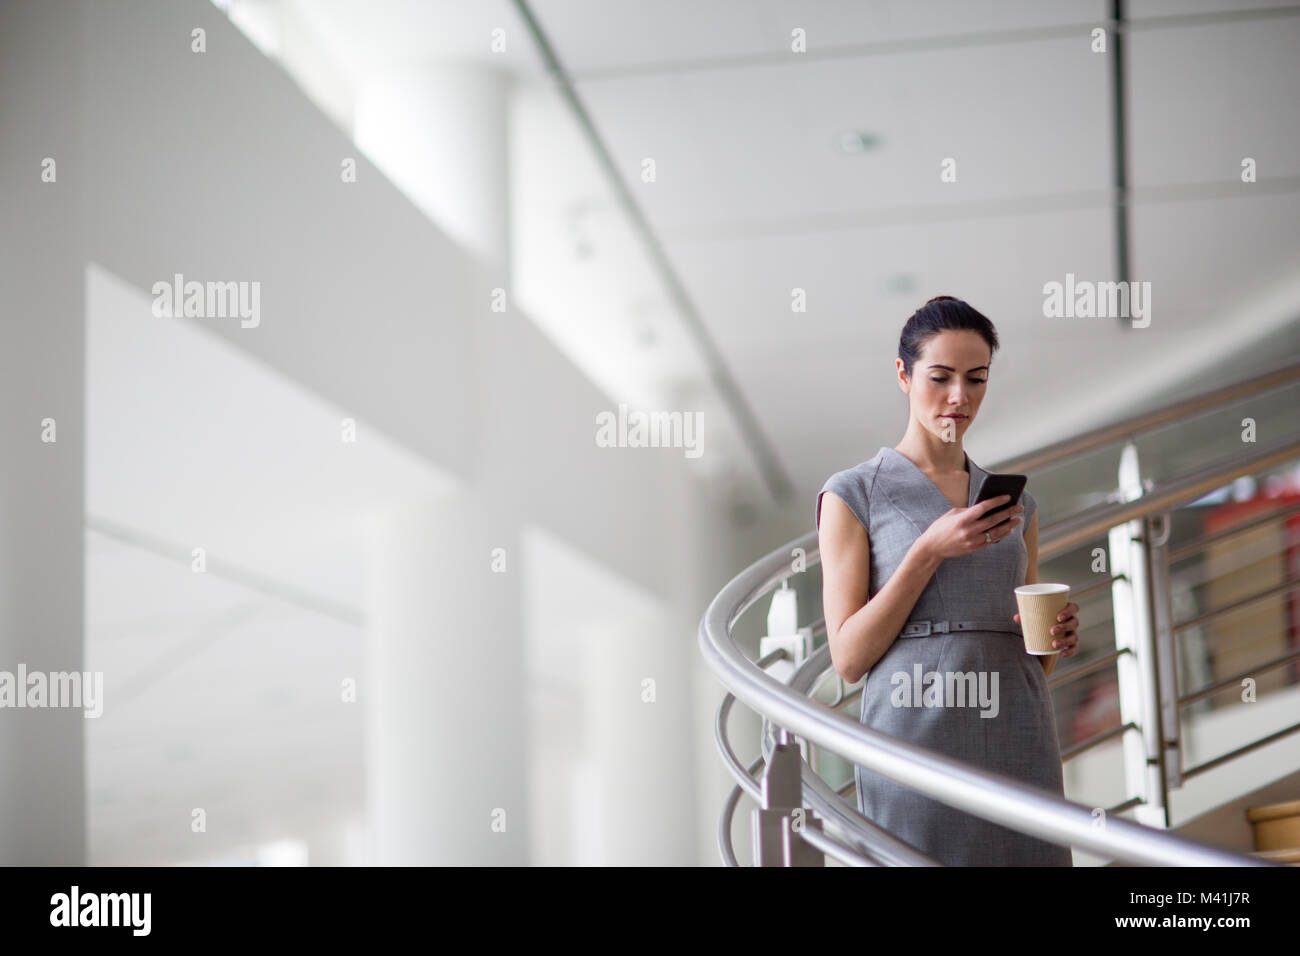 Businesswoman using smartphone app on her way to work - Stock Image